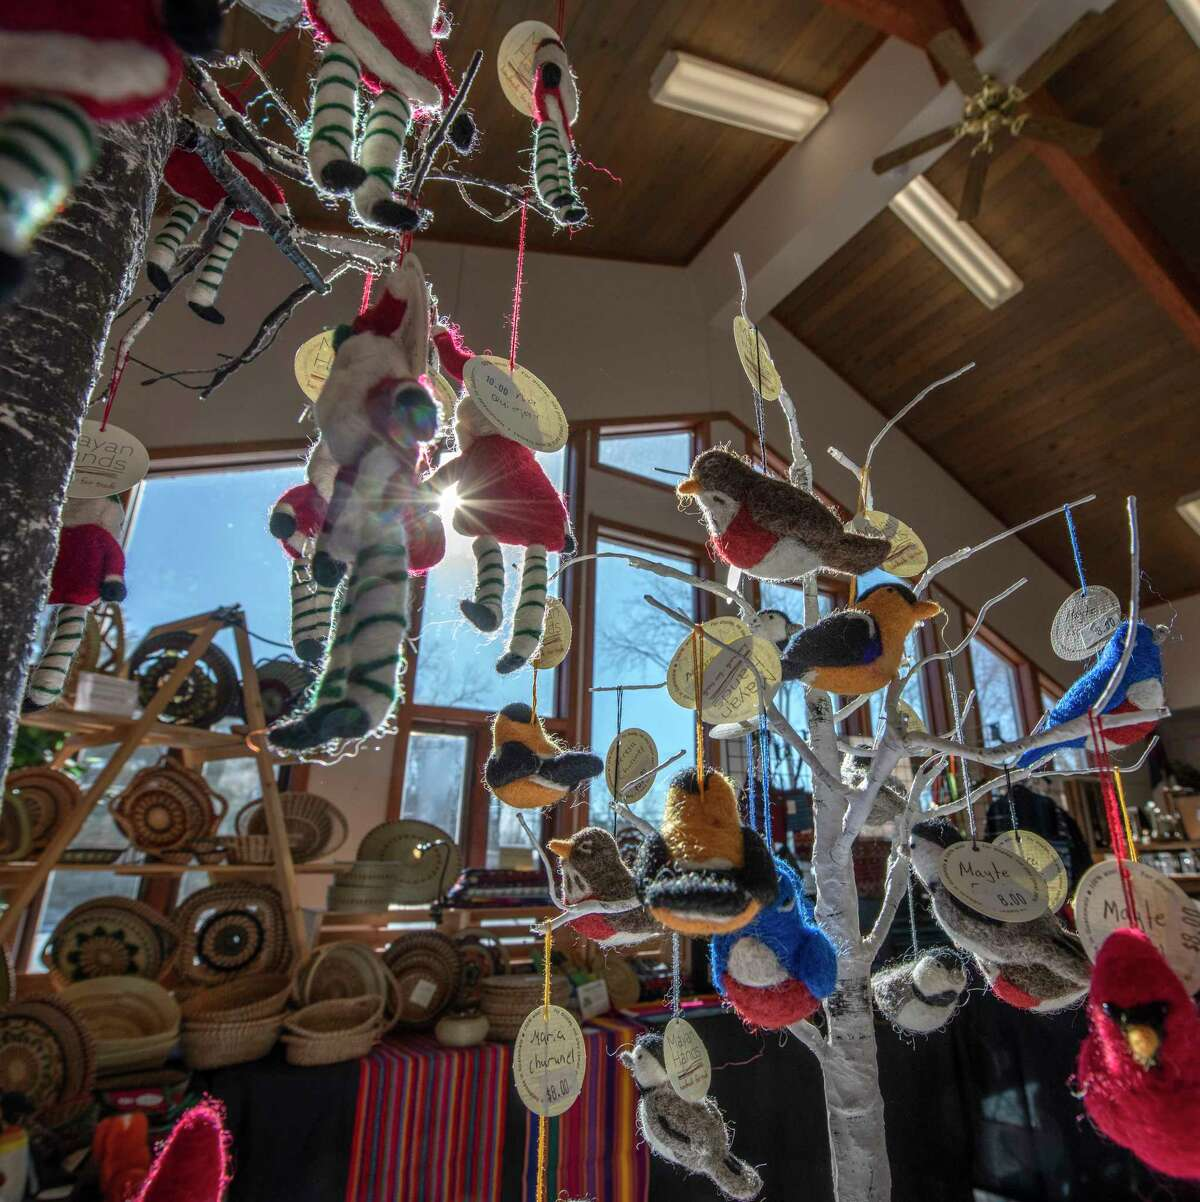 Christmas ornaments hang from a display at the Fair Trade store set up at the Delmar Presbyterian Church on Black Friday Nov. 23, 2018 in Delmar, N.Y. (Skip Dickstein/Times Union)